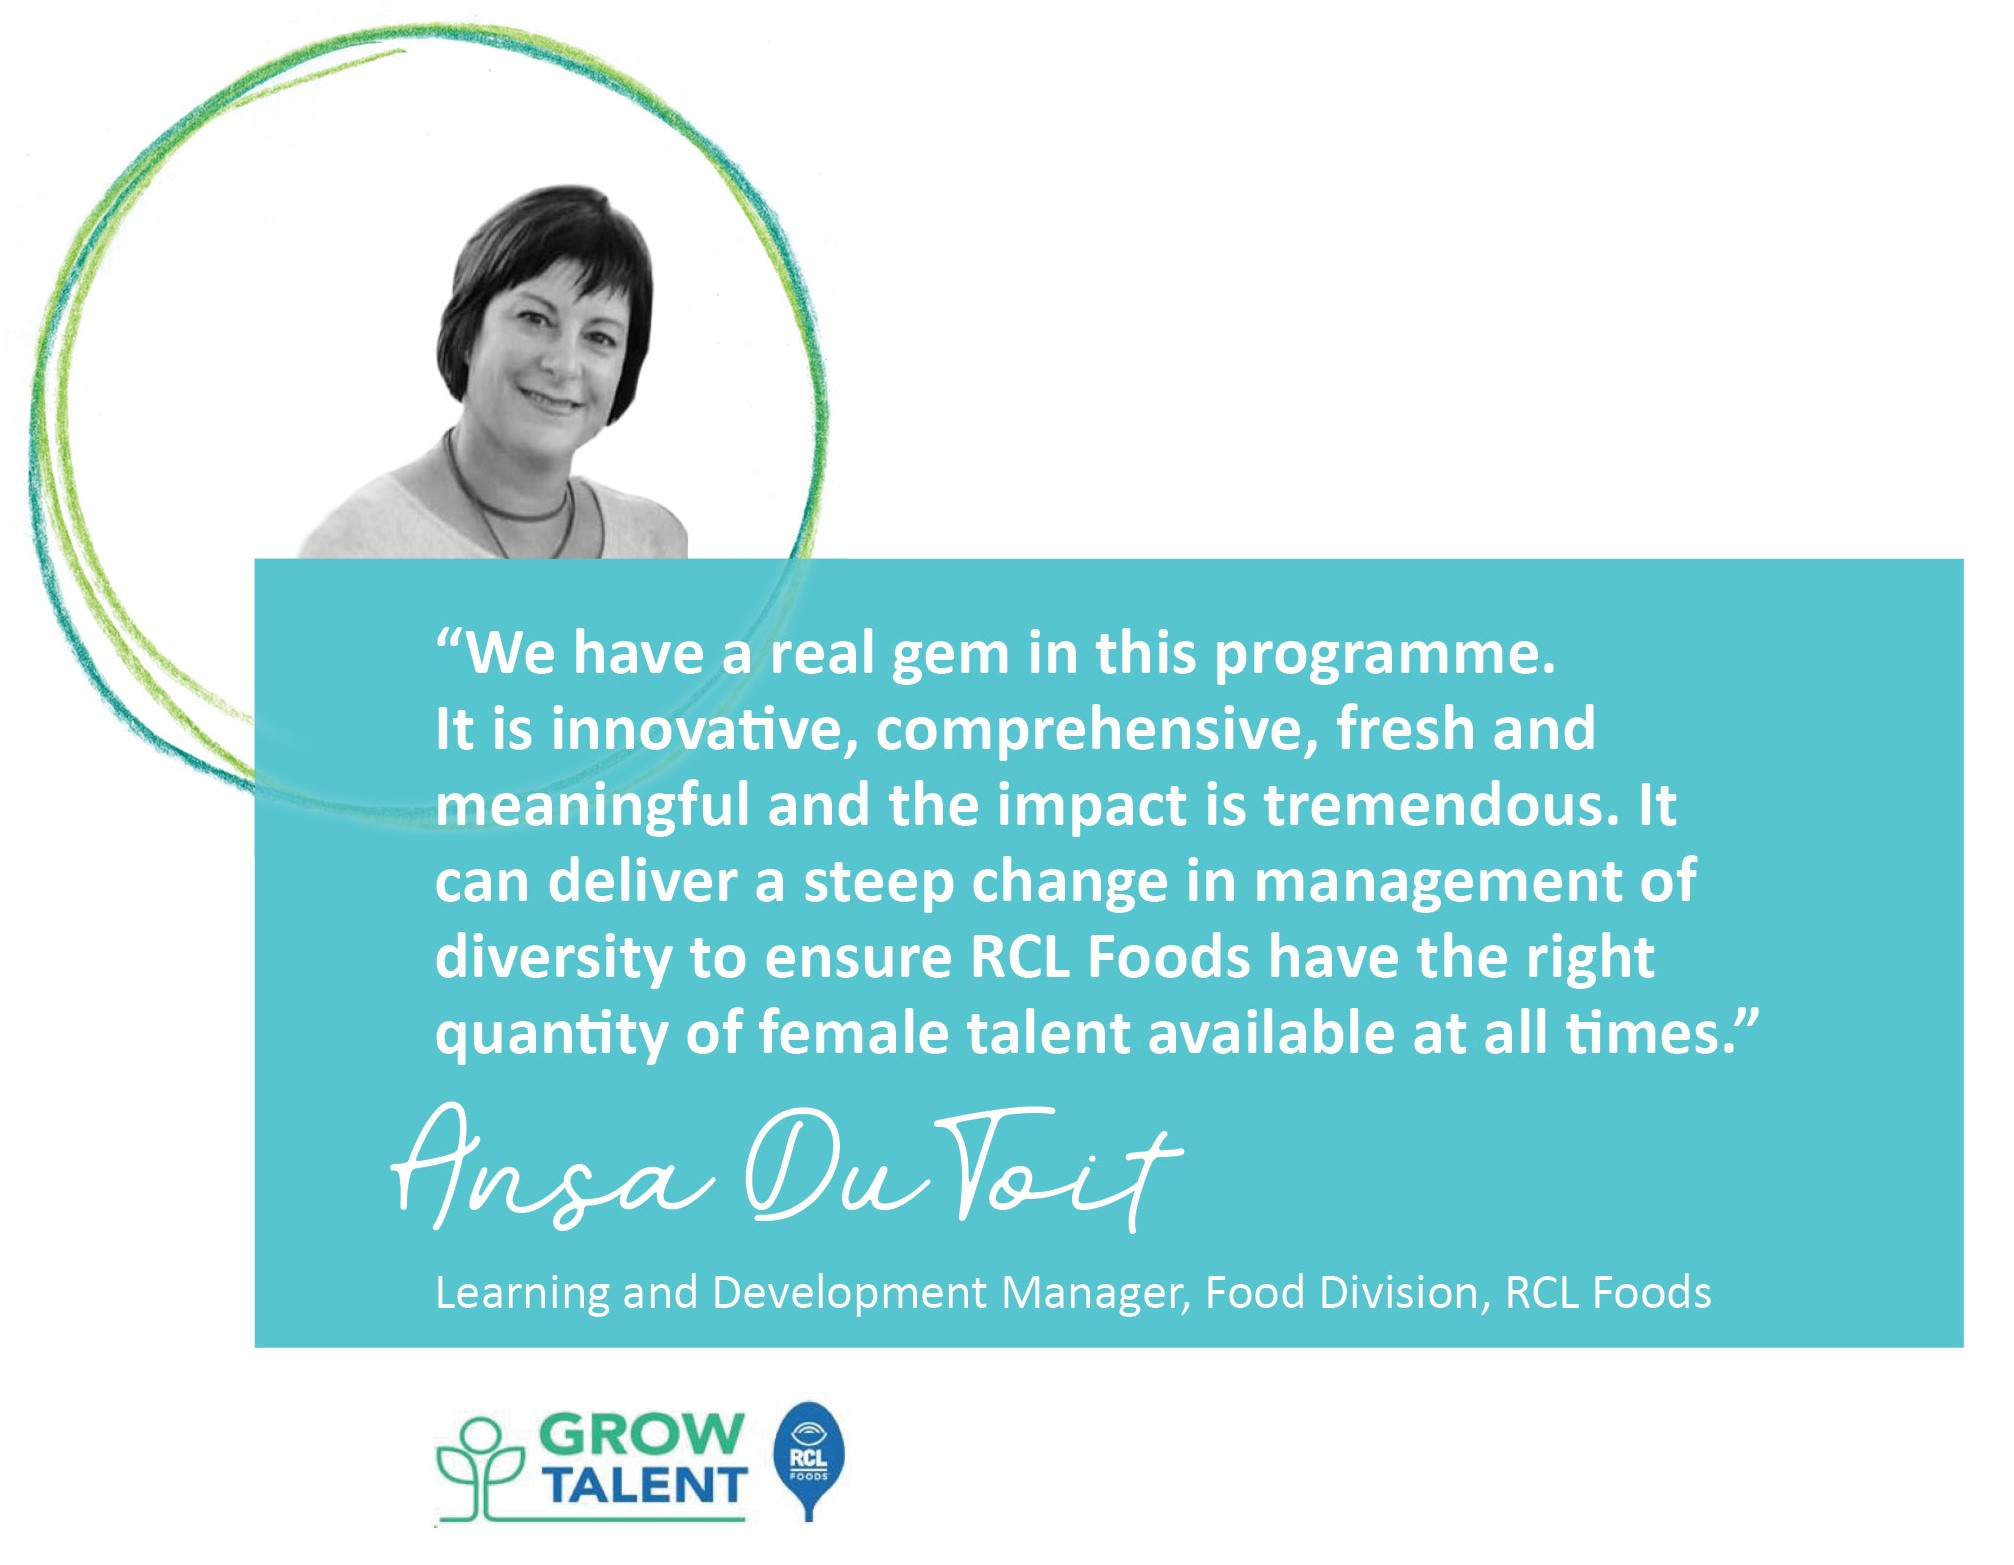 Free To Grow, Womens' Development, Shine!, empowering women leaders, RCL Foods, Ansa du Toit